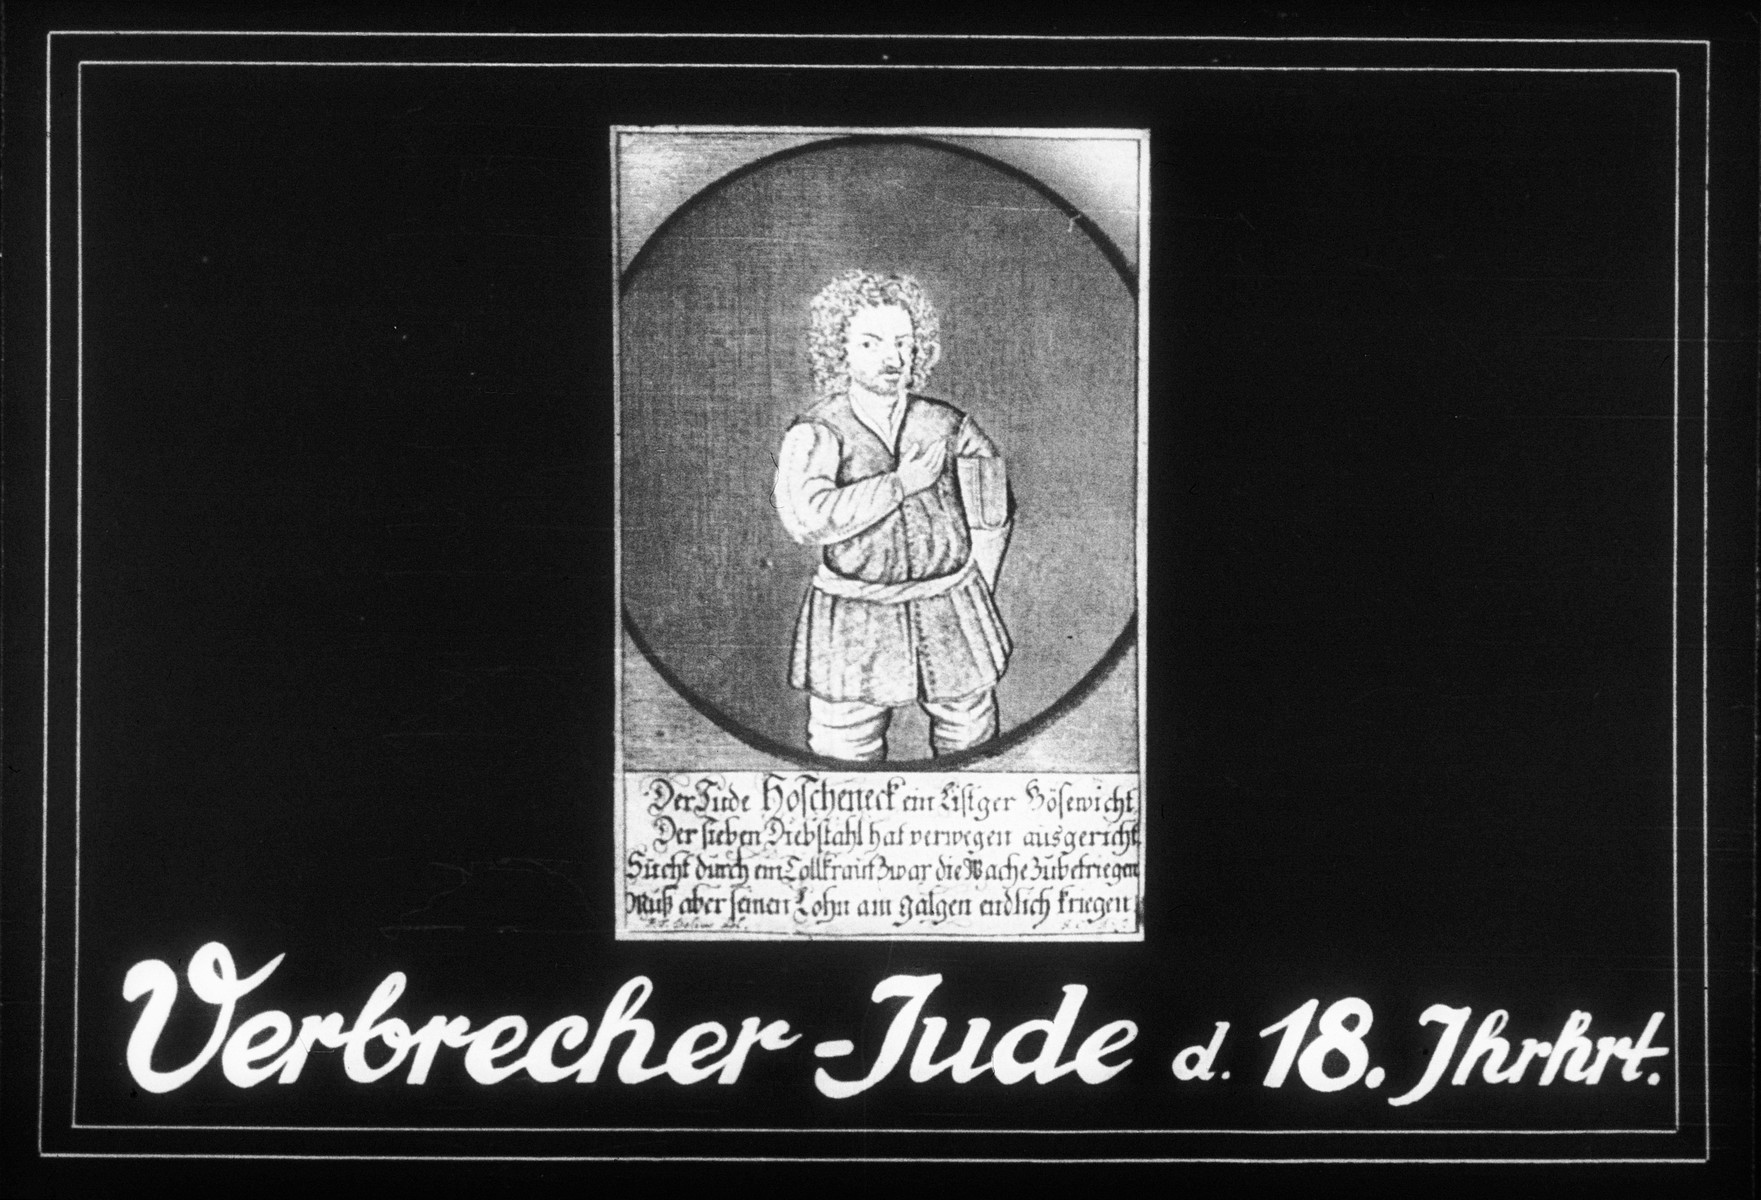 """Propaganda slide entitled """"Criminal-Jew of the 18th century,"""" featuring the image of a Jew named Hoschemeck, who is described in a rhyme as being a tricky criminal who committed seven thefts and deserves to be hanged on a gallows."""